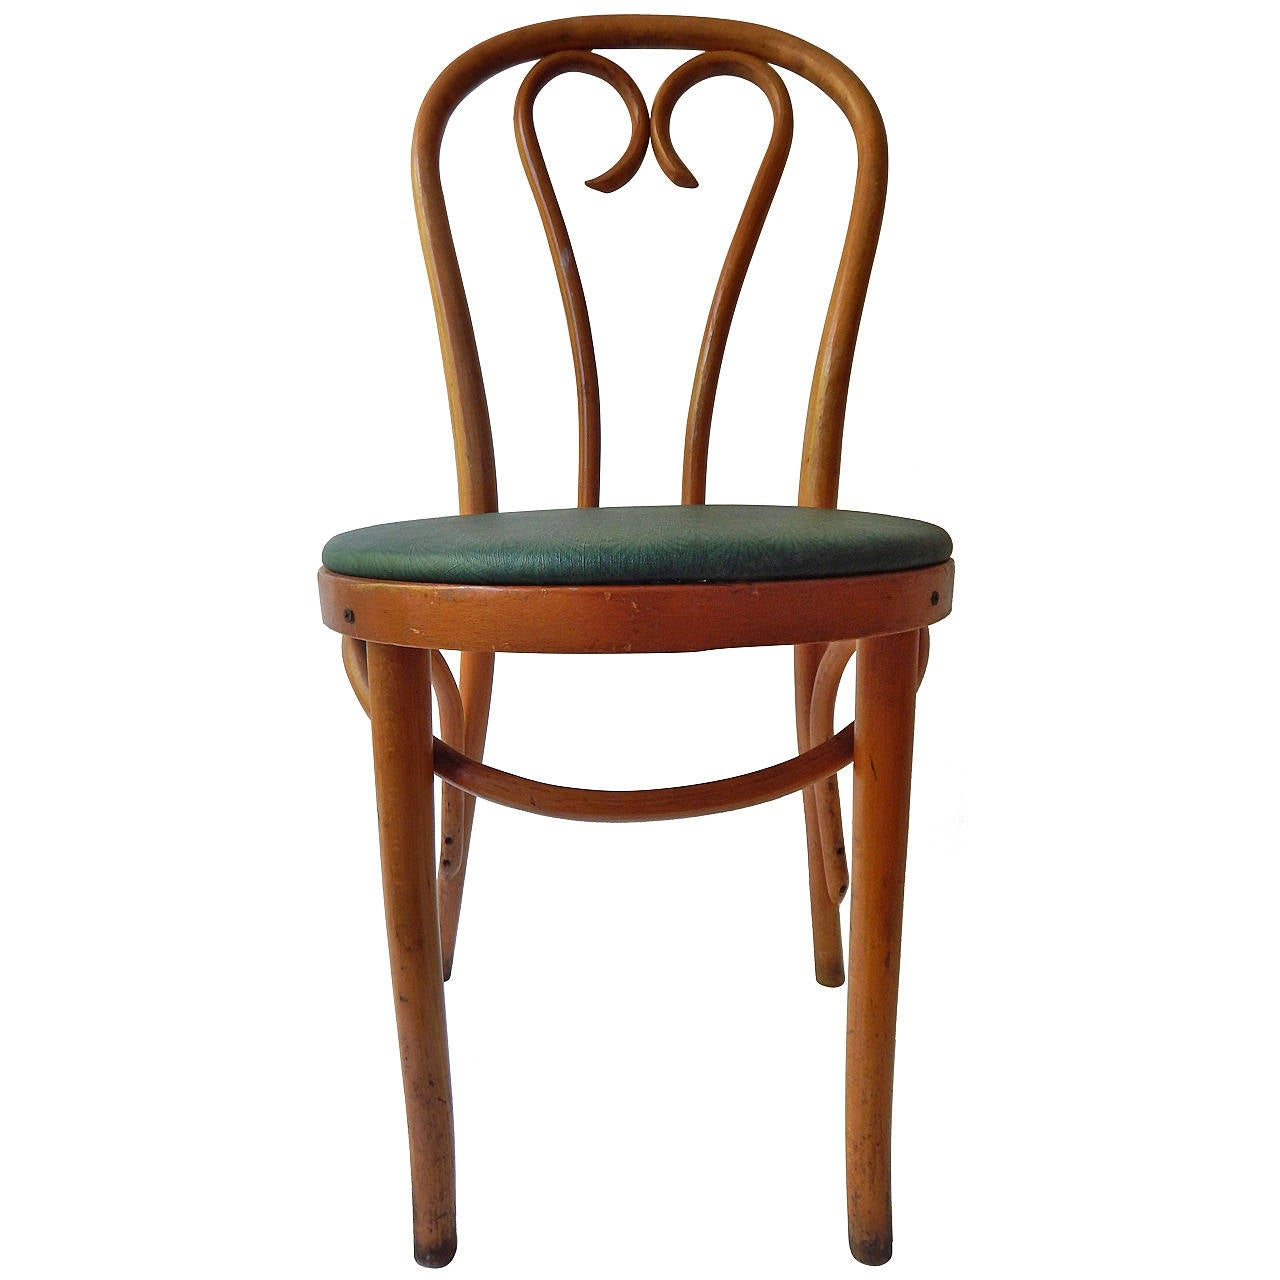 Bent Wood Chairs 10 Thonet Bentwood Cafe Chairs At 1stdibs